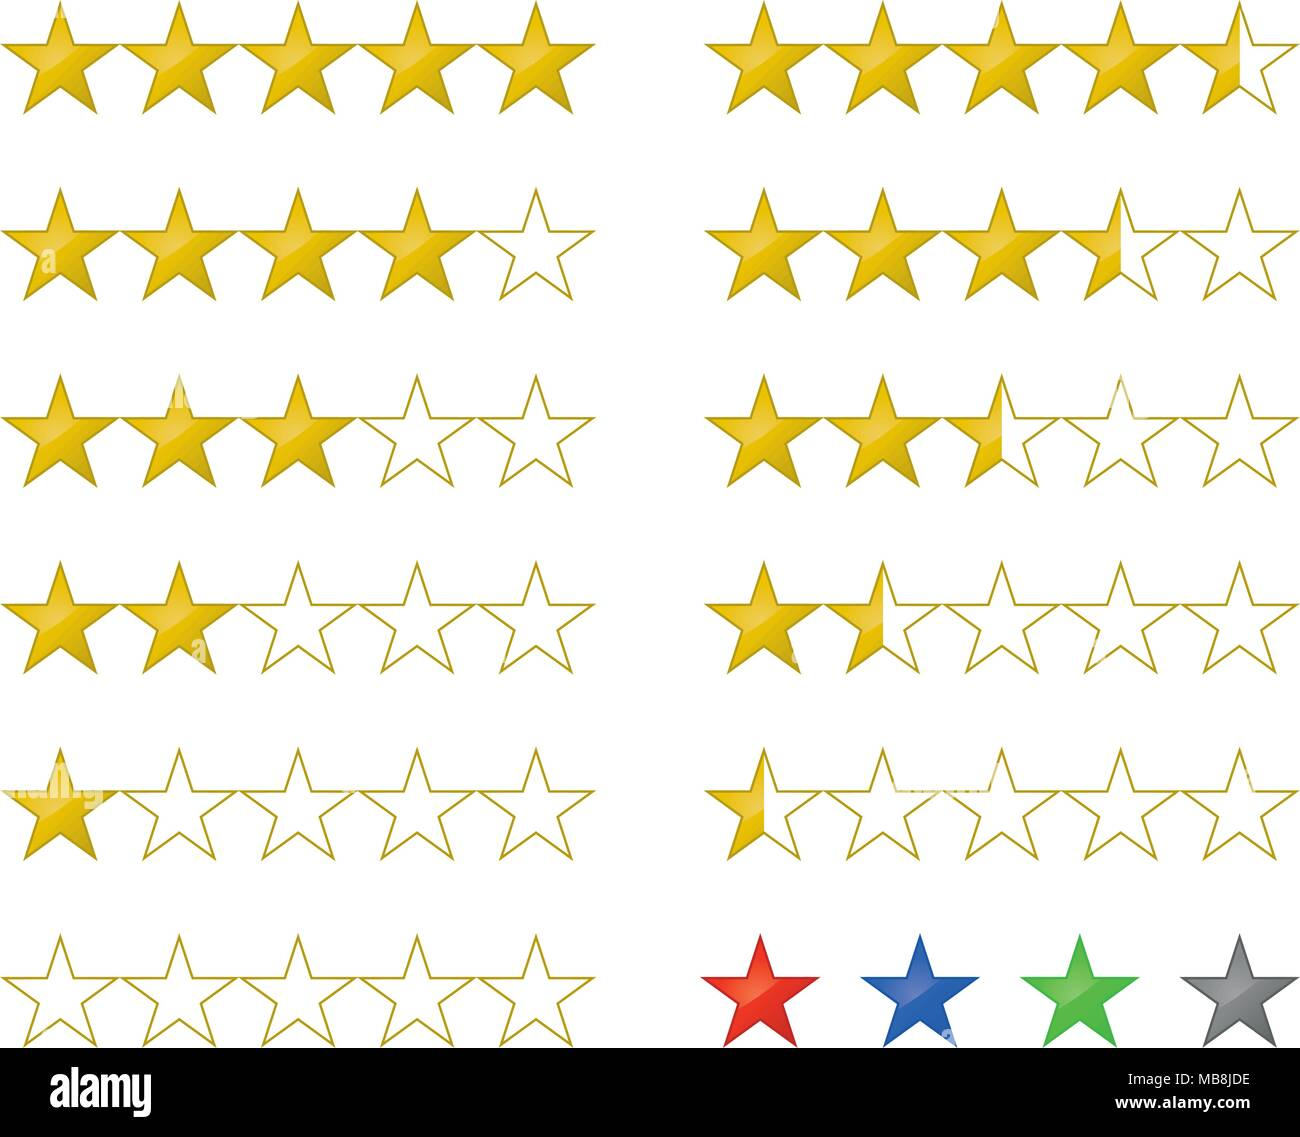 Glossy golden rating and review stars icons from 5 to zero in half star increments. Global colors. - Stock Vector